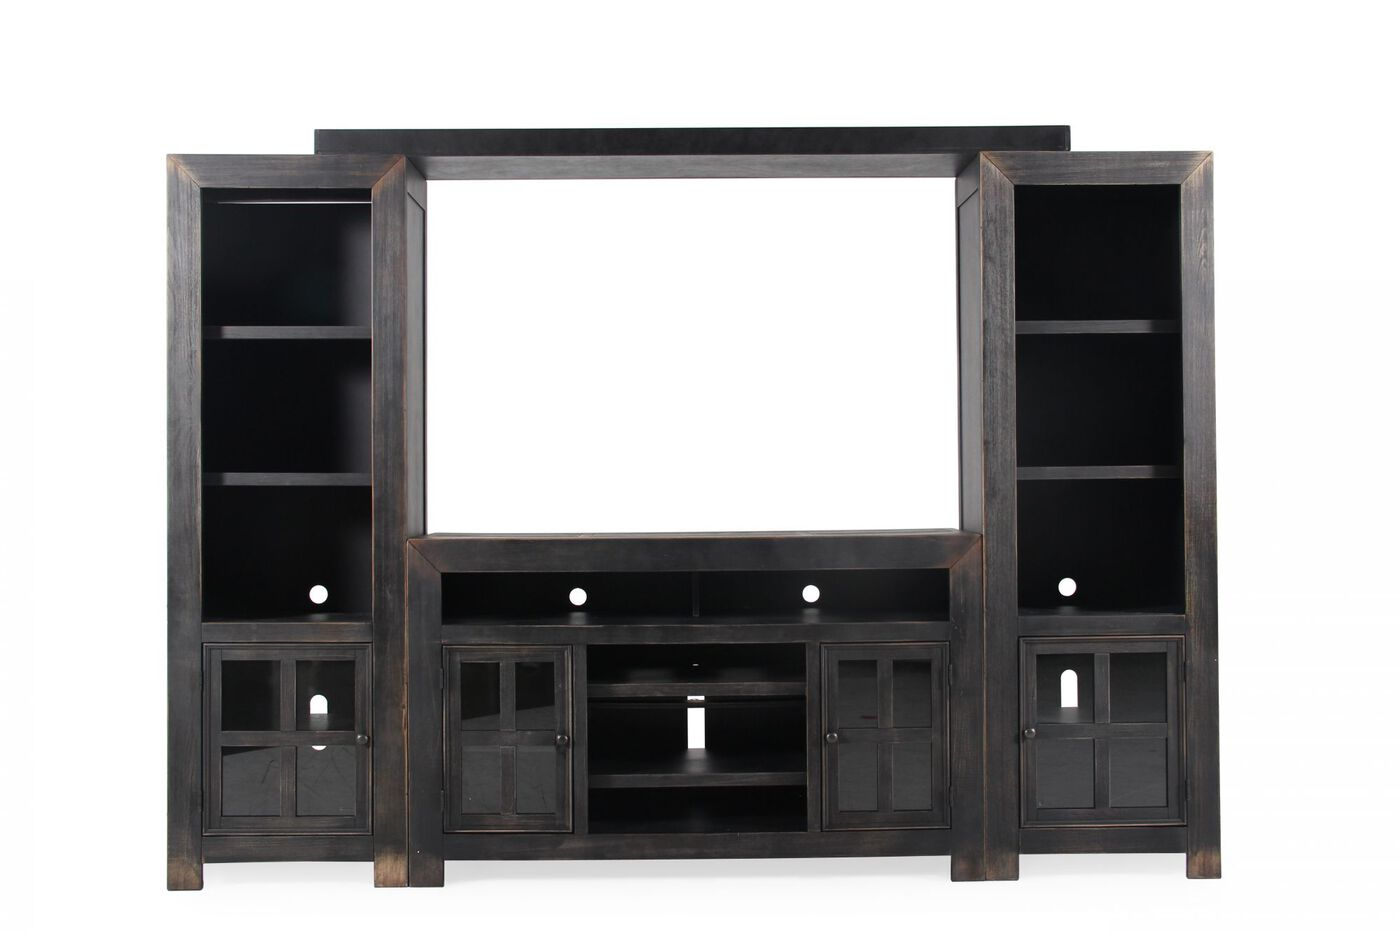 Four Piece Casual Wall Unit In Vintage Weathered Black Mathis Brothers Furniture